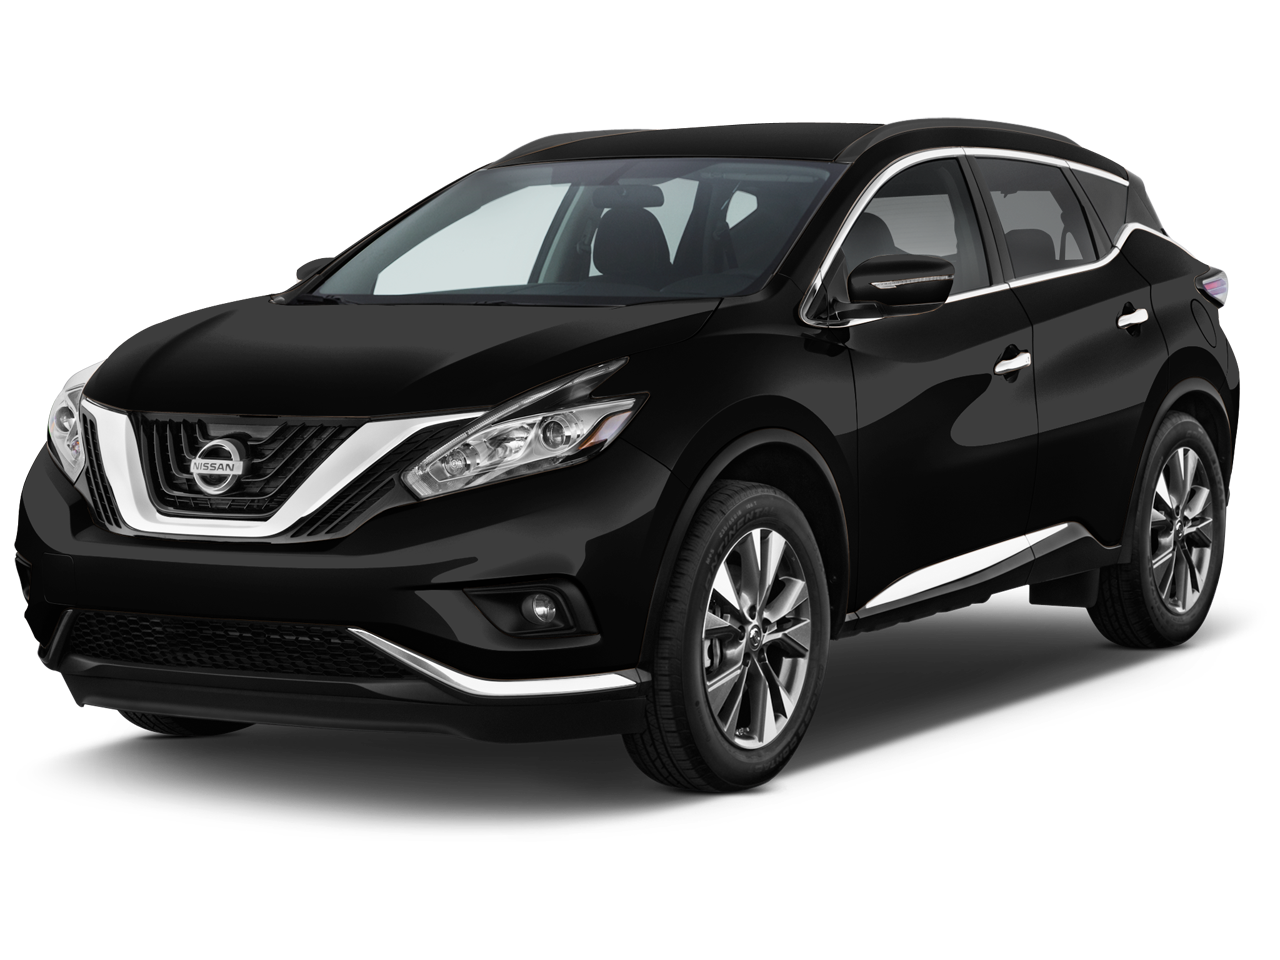 new 2017 nissan murano for sale near south holland il kelly nissan. Black Bedroom Furniture Sets. Home Design Ideas